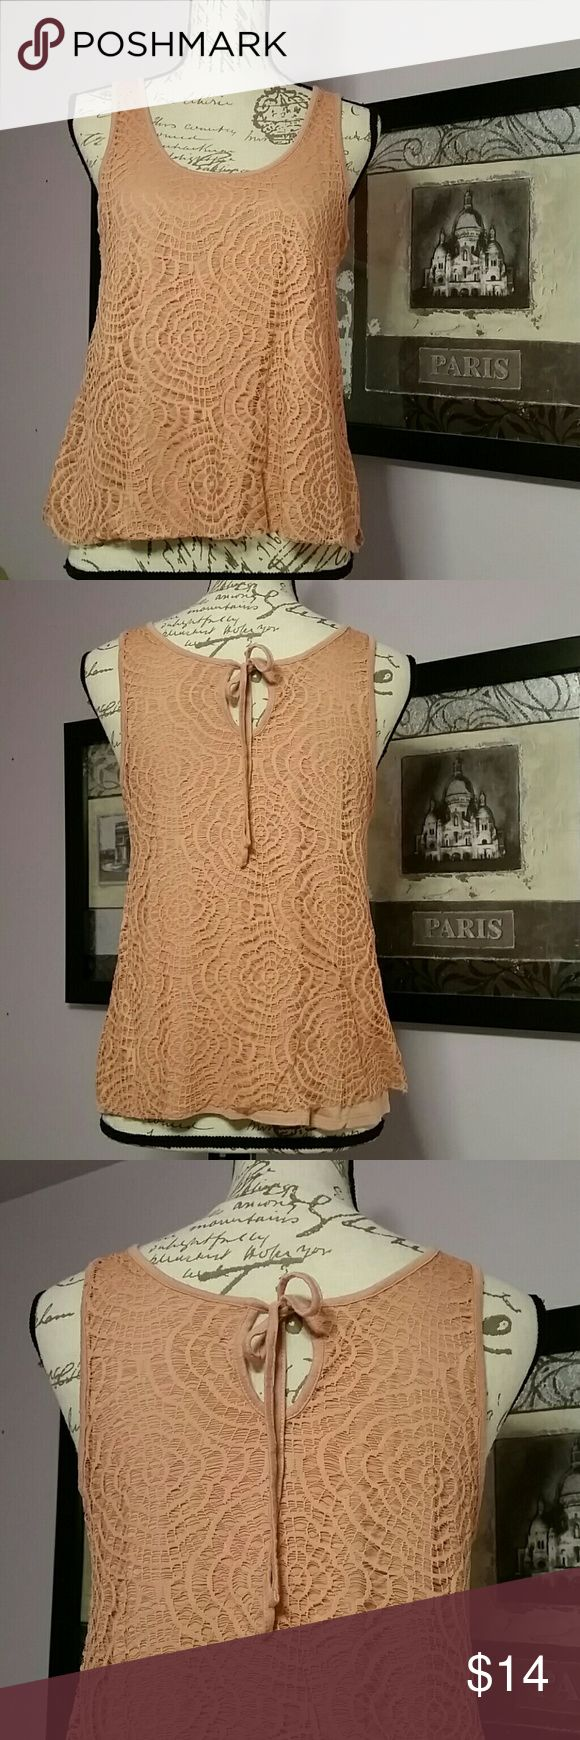 """LC Lauren Conrad 2 layer tank LC Lauren Conrad 2 layer tank with tie back. Dark peach color. This is a shorter length shirt at approx 21"""" from shoulder to hemline LC Lauren Conrad Tops"""